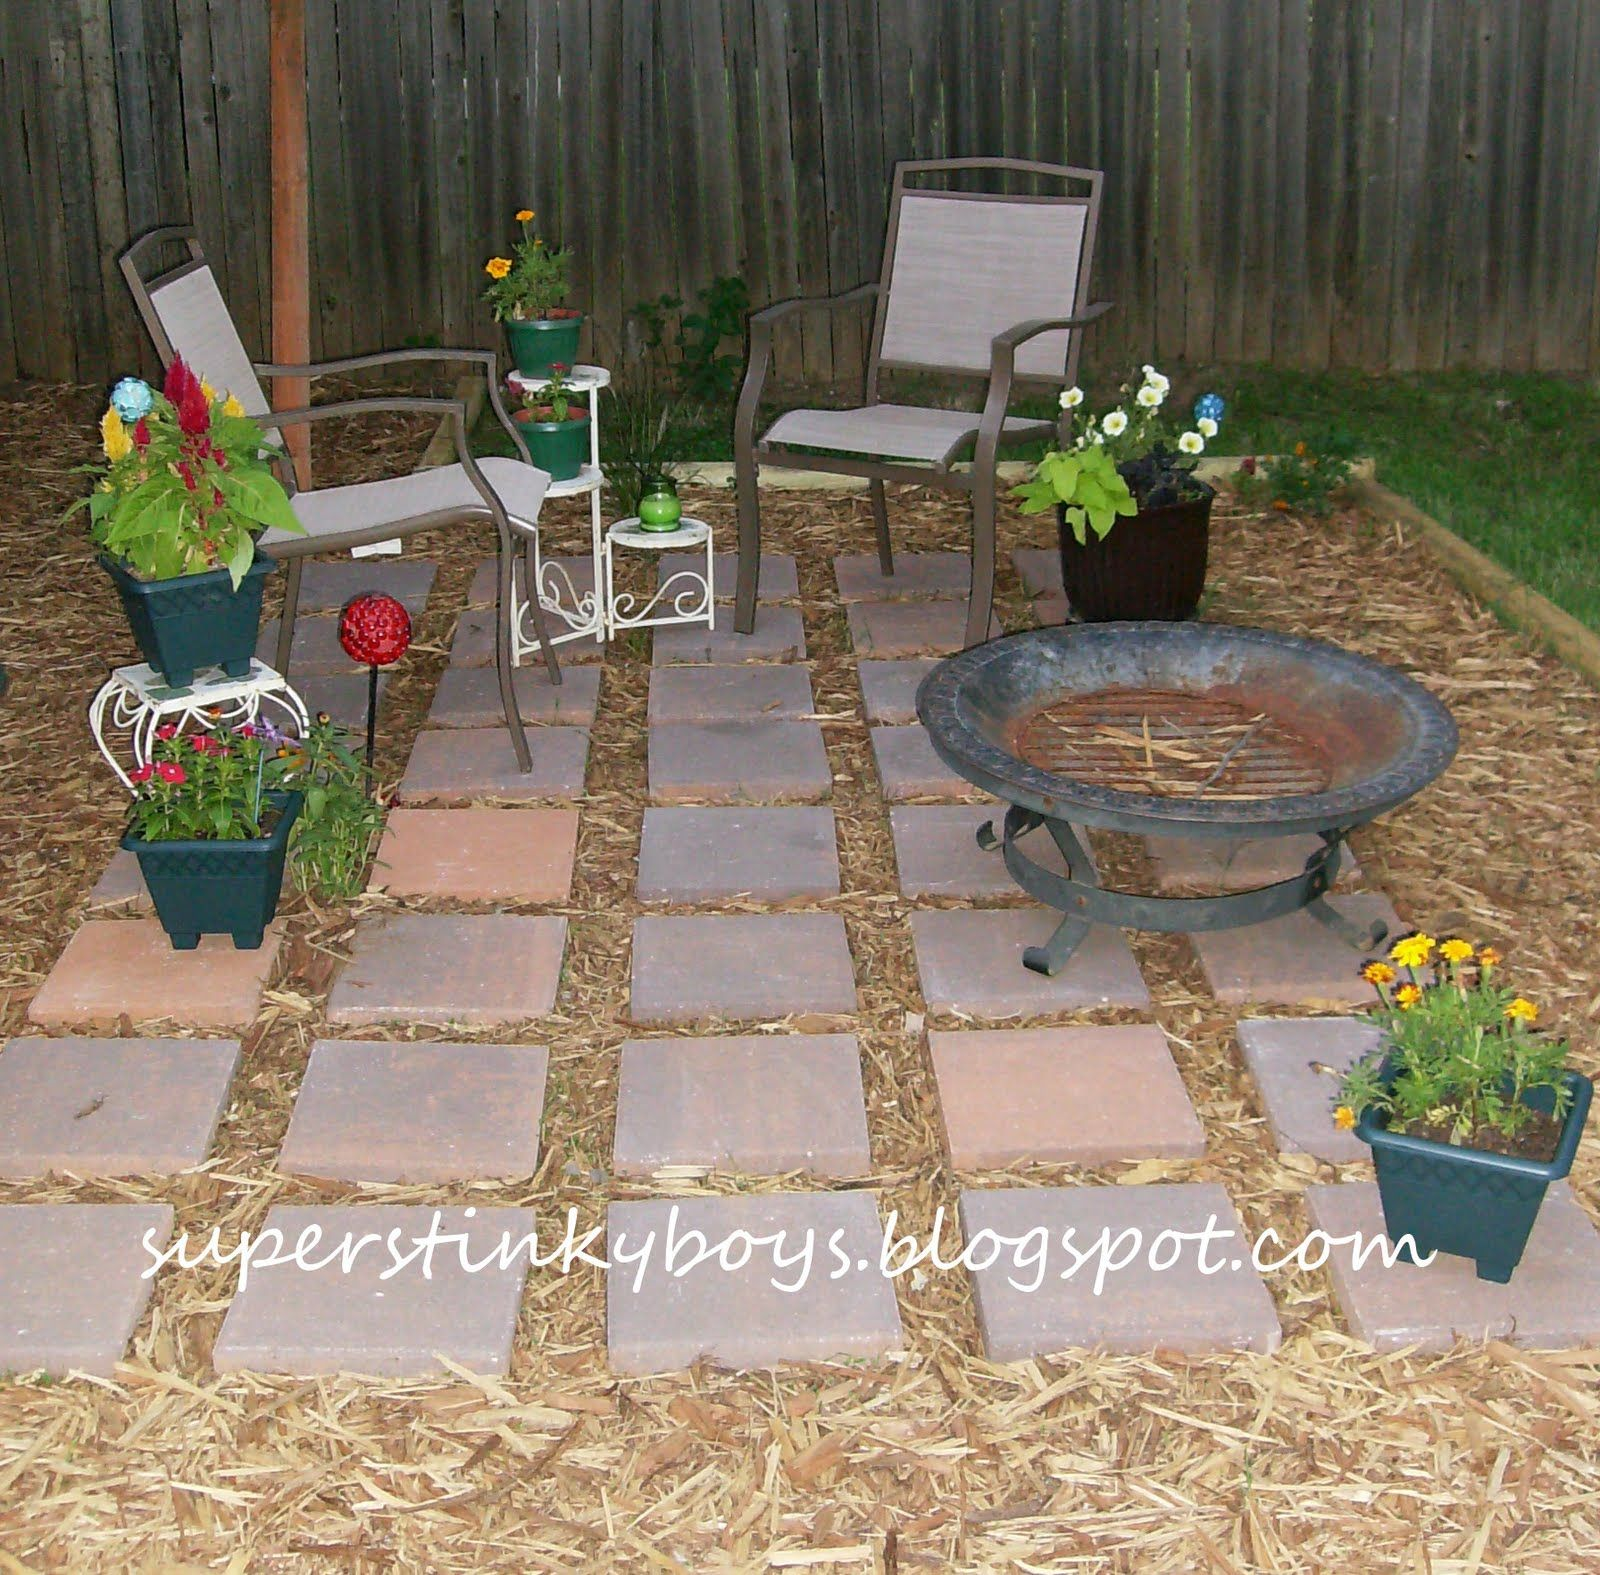 Great Backyards On a Budget | We had a great time and I ... on Small Backyard Designs On A Budget id=37590